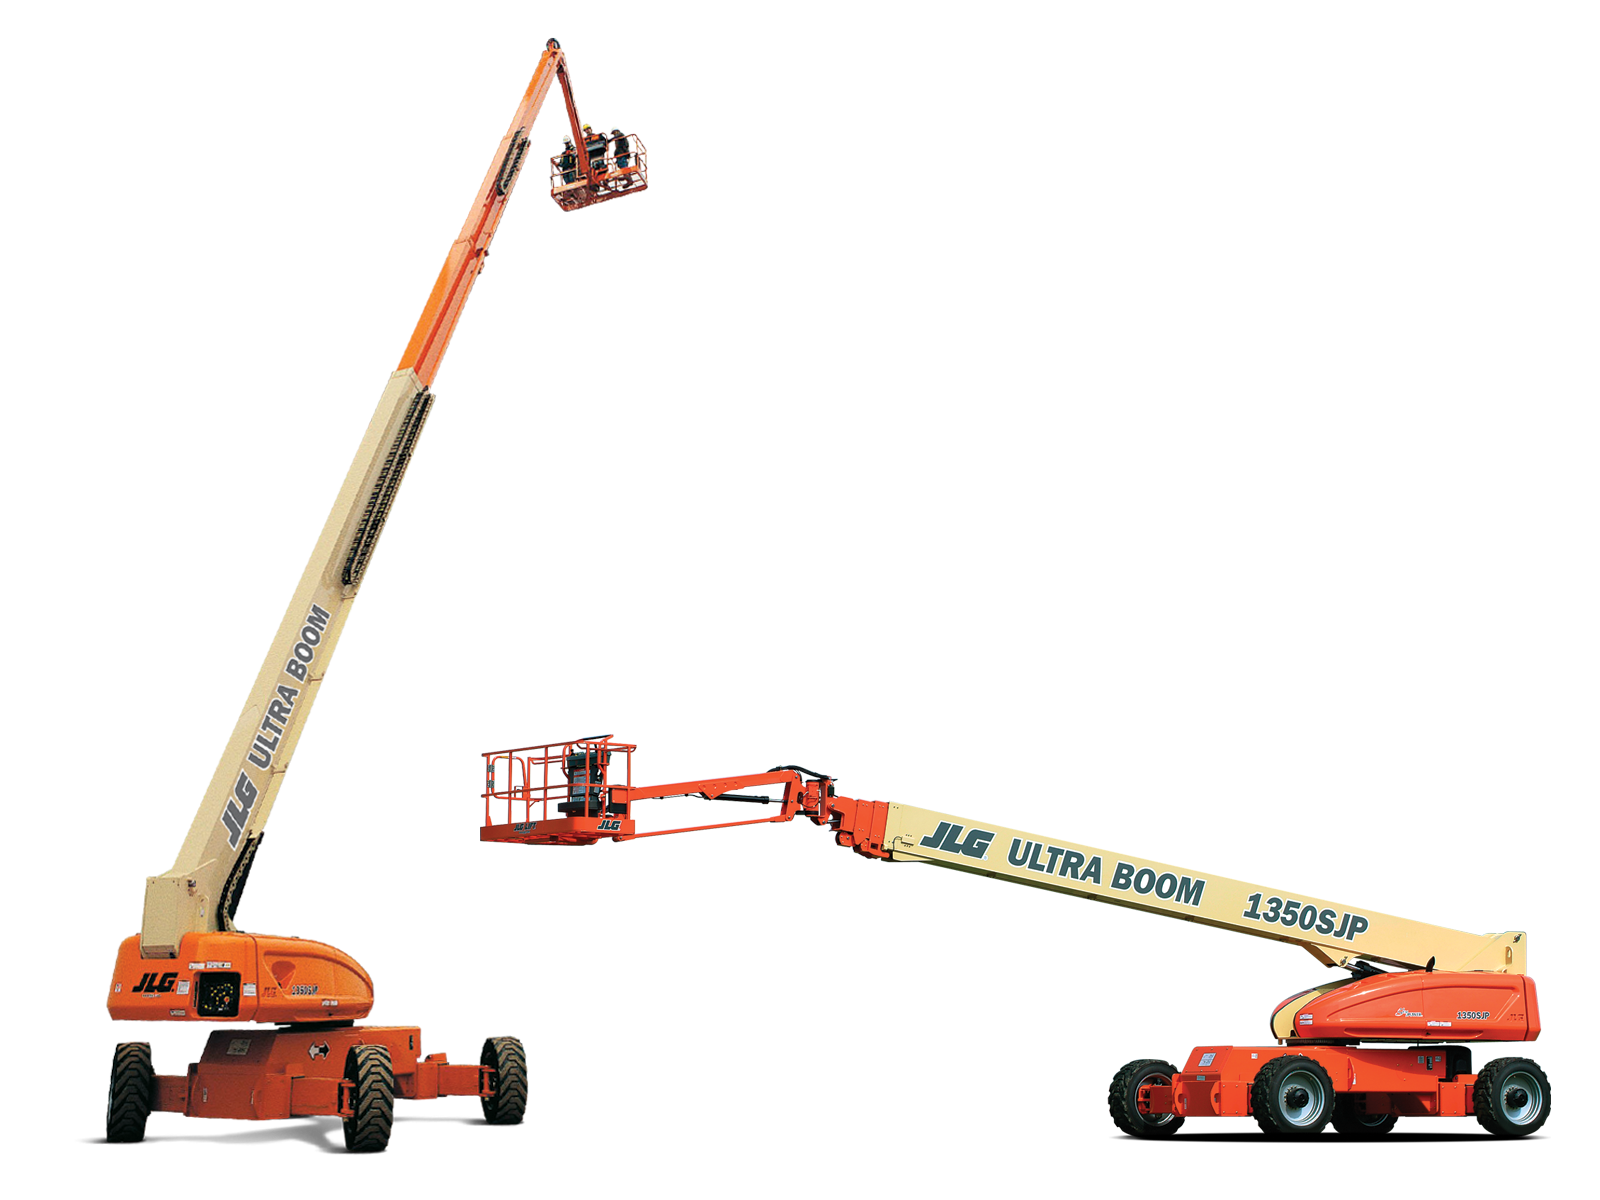 1350sjp Telescopic Boom Lift Jlg International Prostar Engine Diagram Lifts